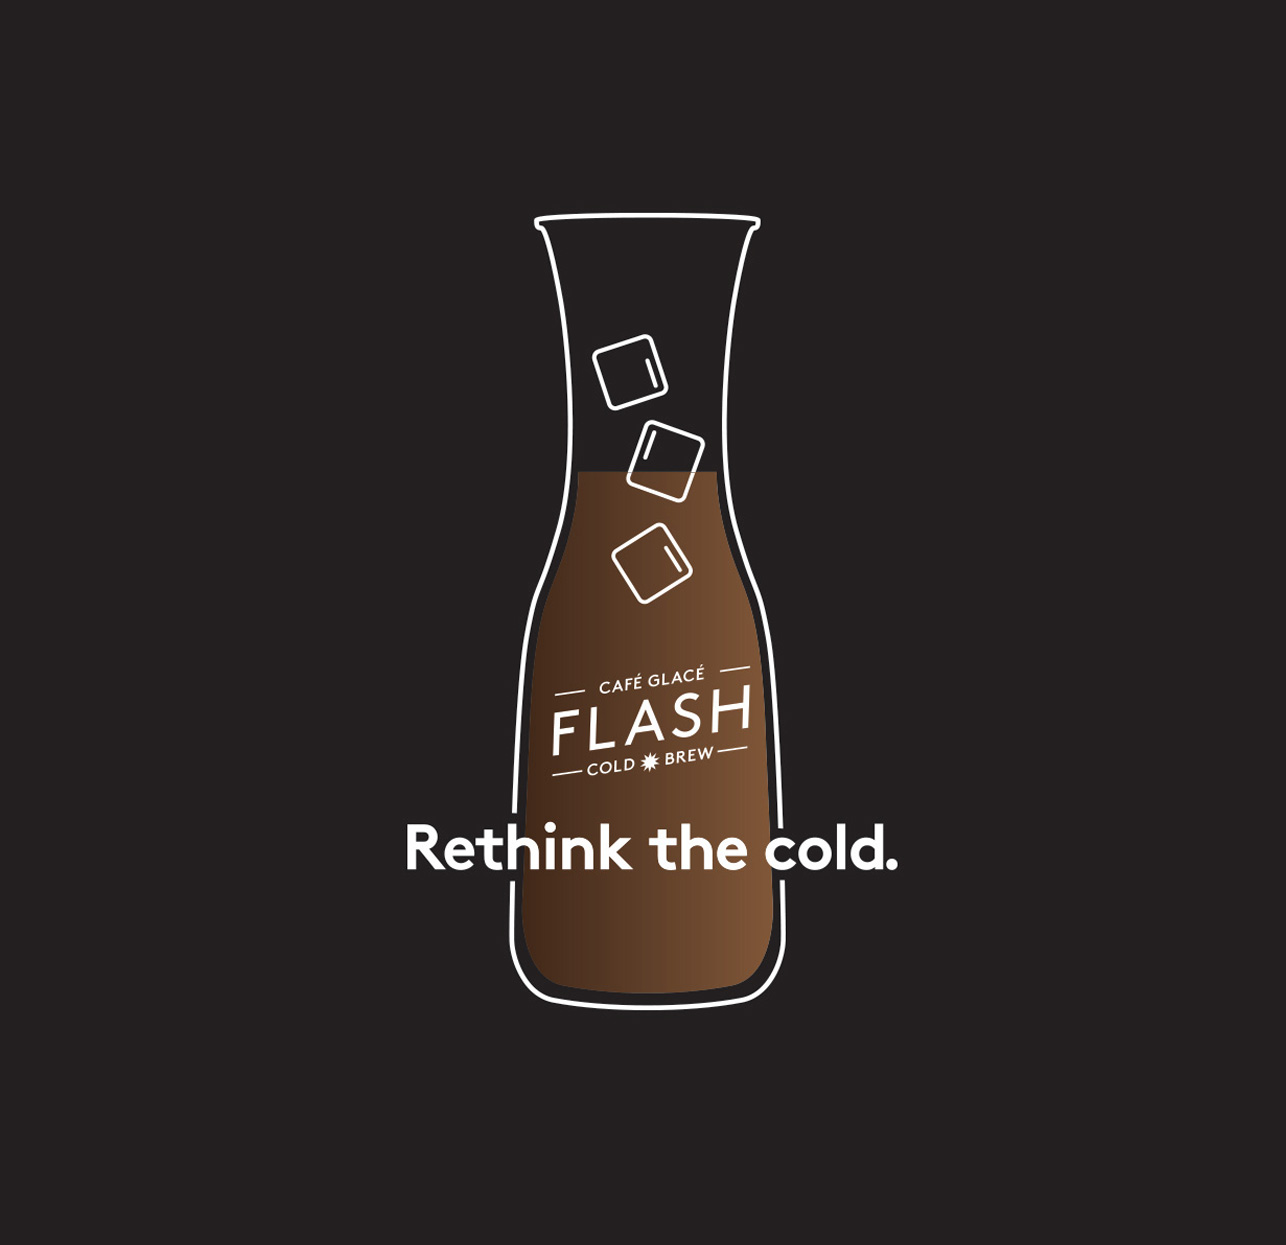 Flash Cold Brew Rethink the Cold image